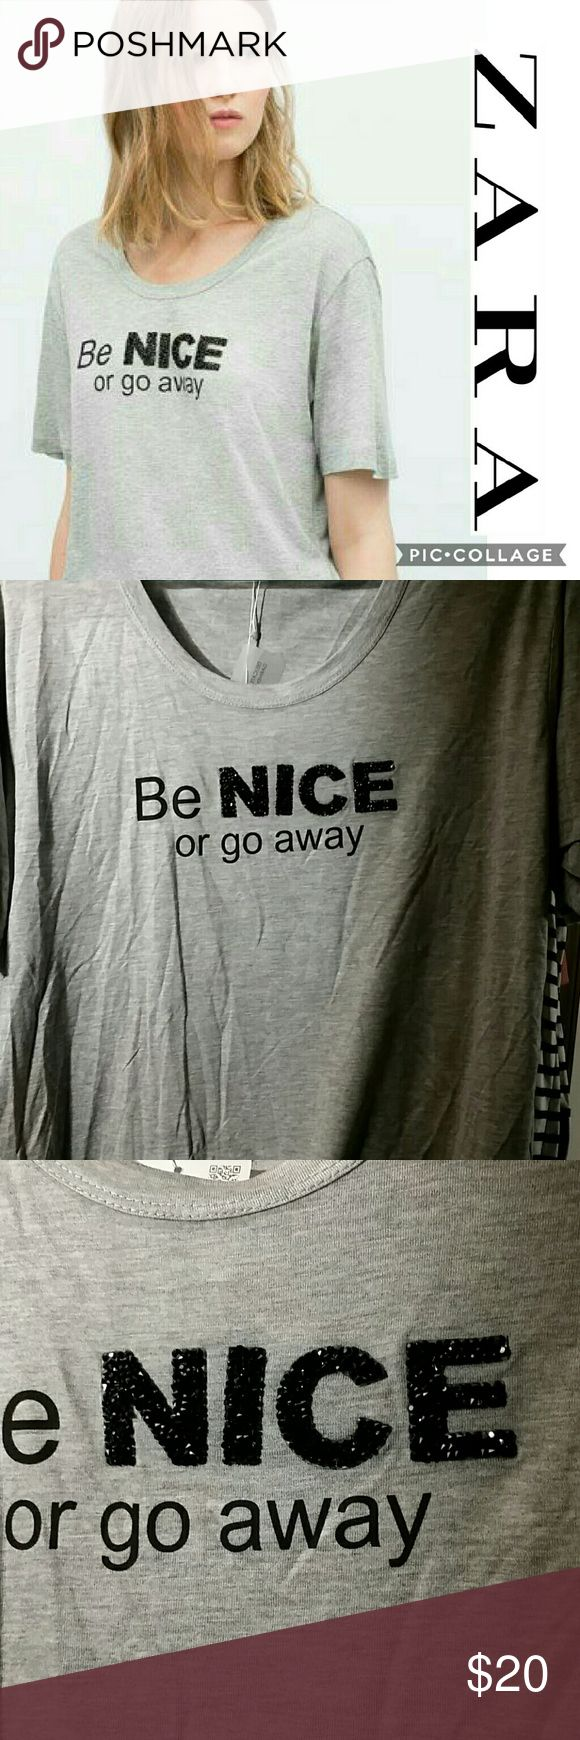 "⚡FLASH SALE ⚡ BNWT Super soft & delicate Lightweight light gray Tshirt from Zara W&B Collection  ""Be NICE or go away"" with sparkly black crystals over the ""NICE"" 100% Viscose Zara Tops Tees - Short Sleeve"